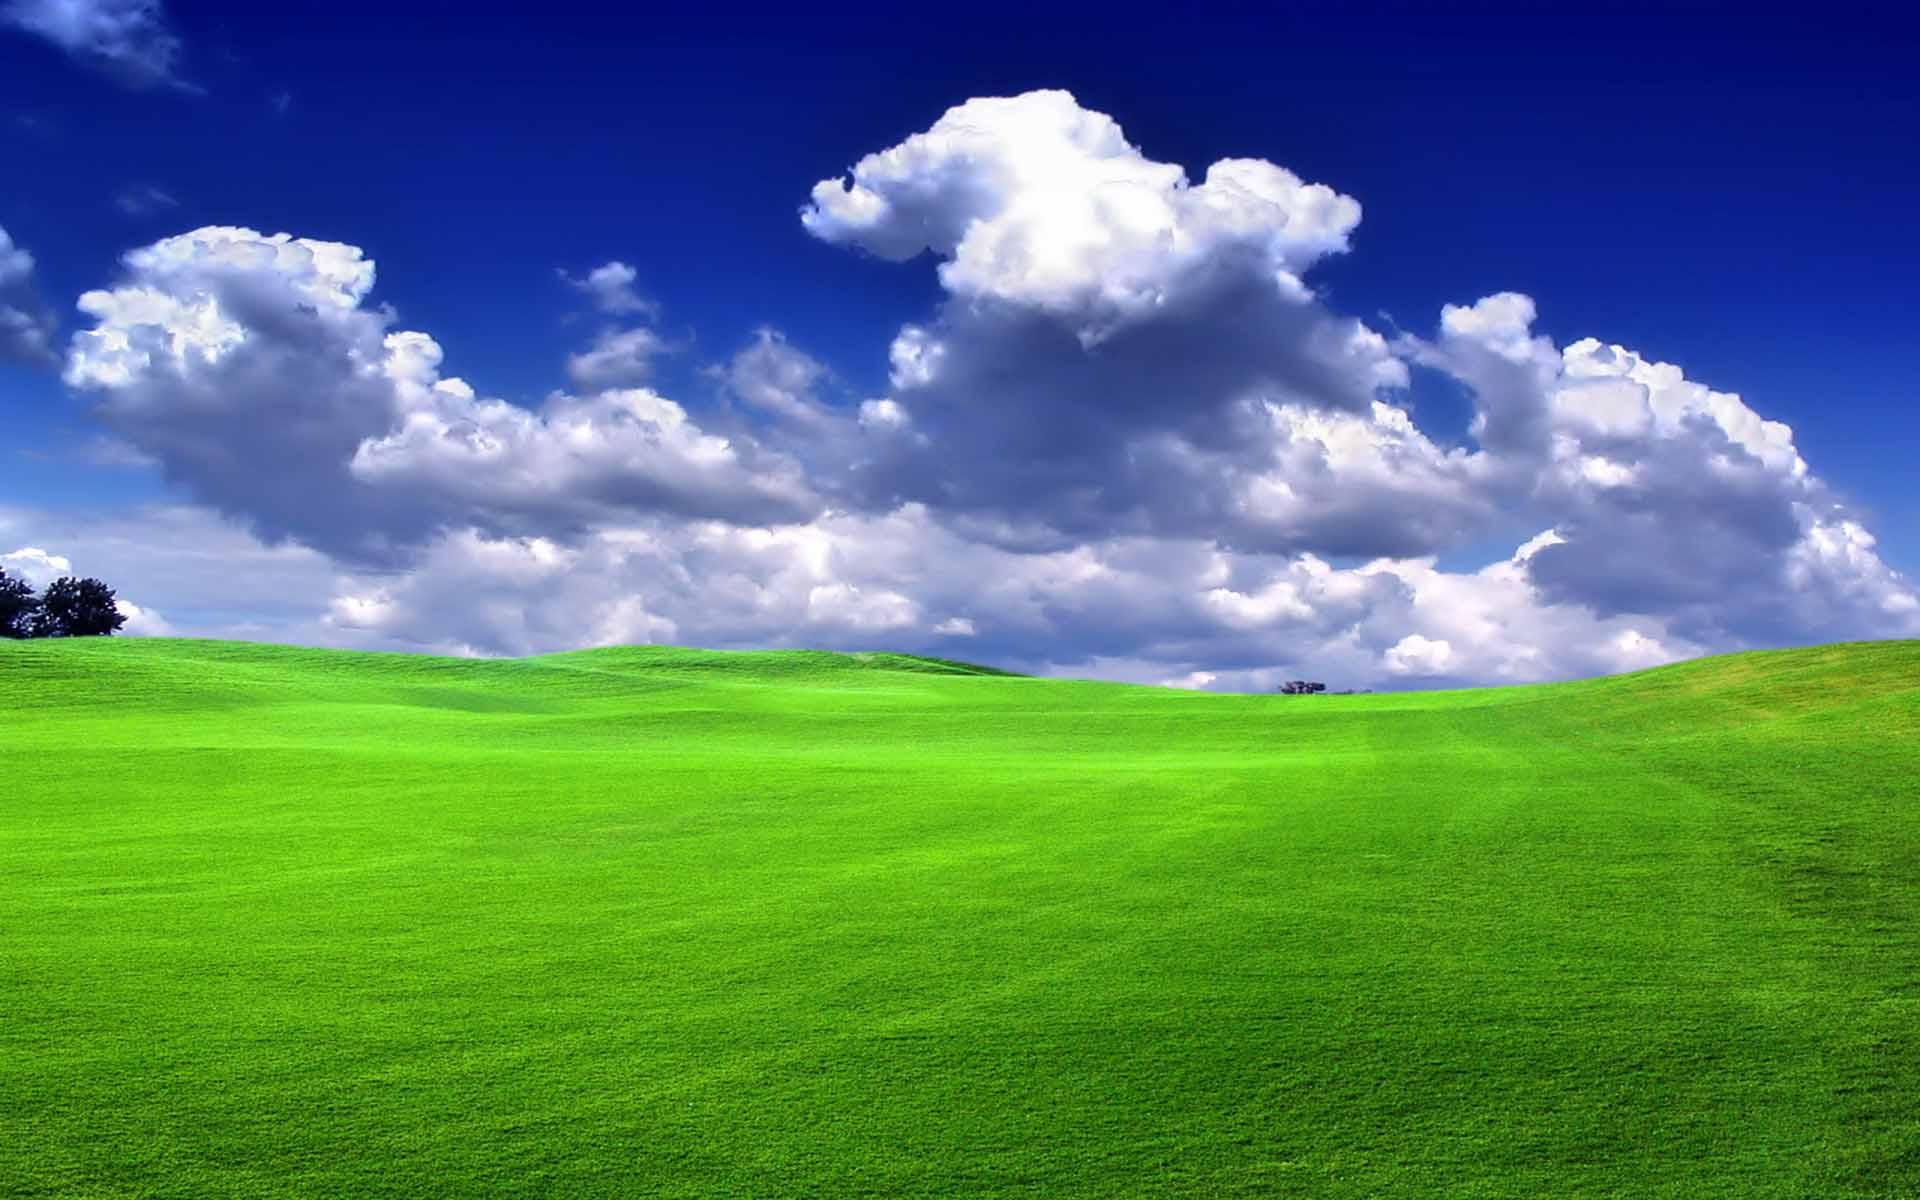 green field hd desktop wallpapers free download nature images